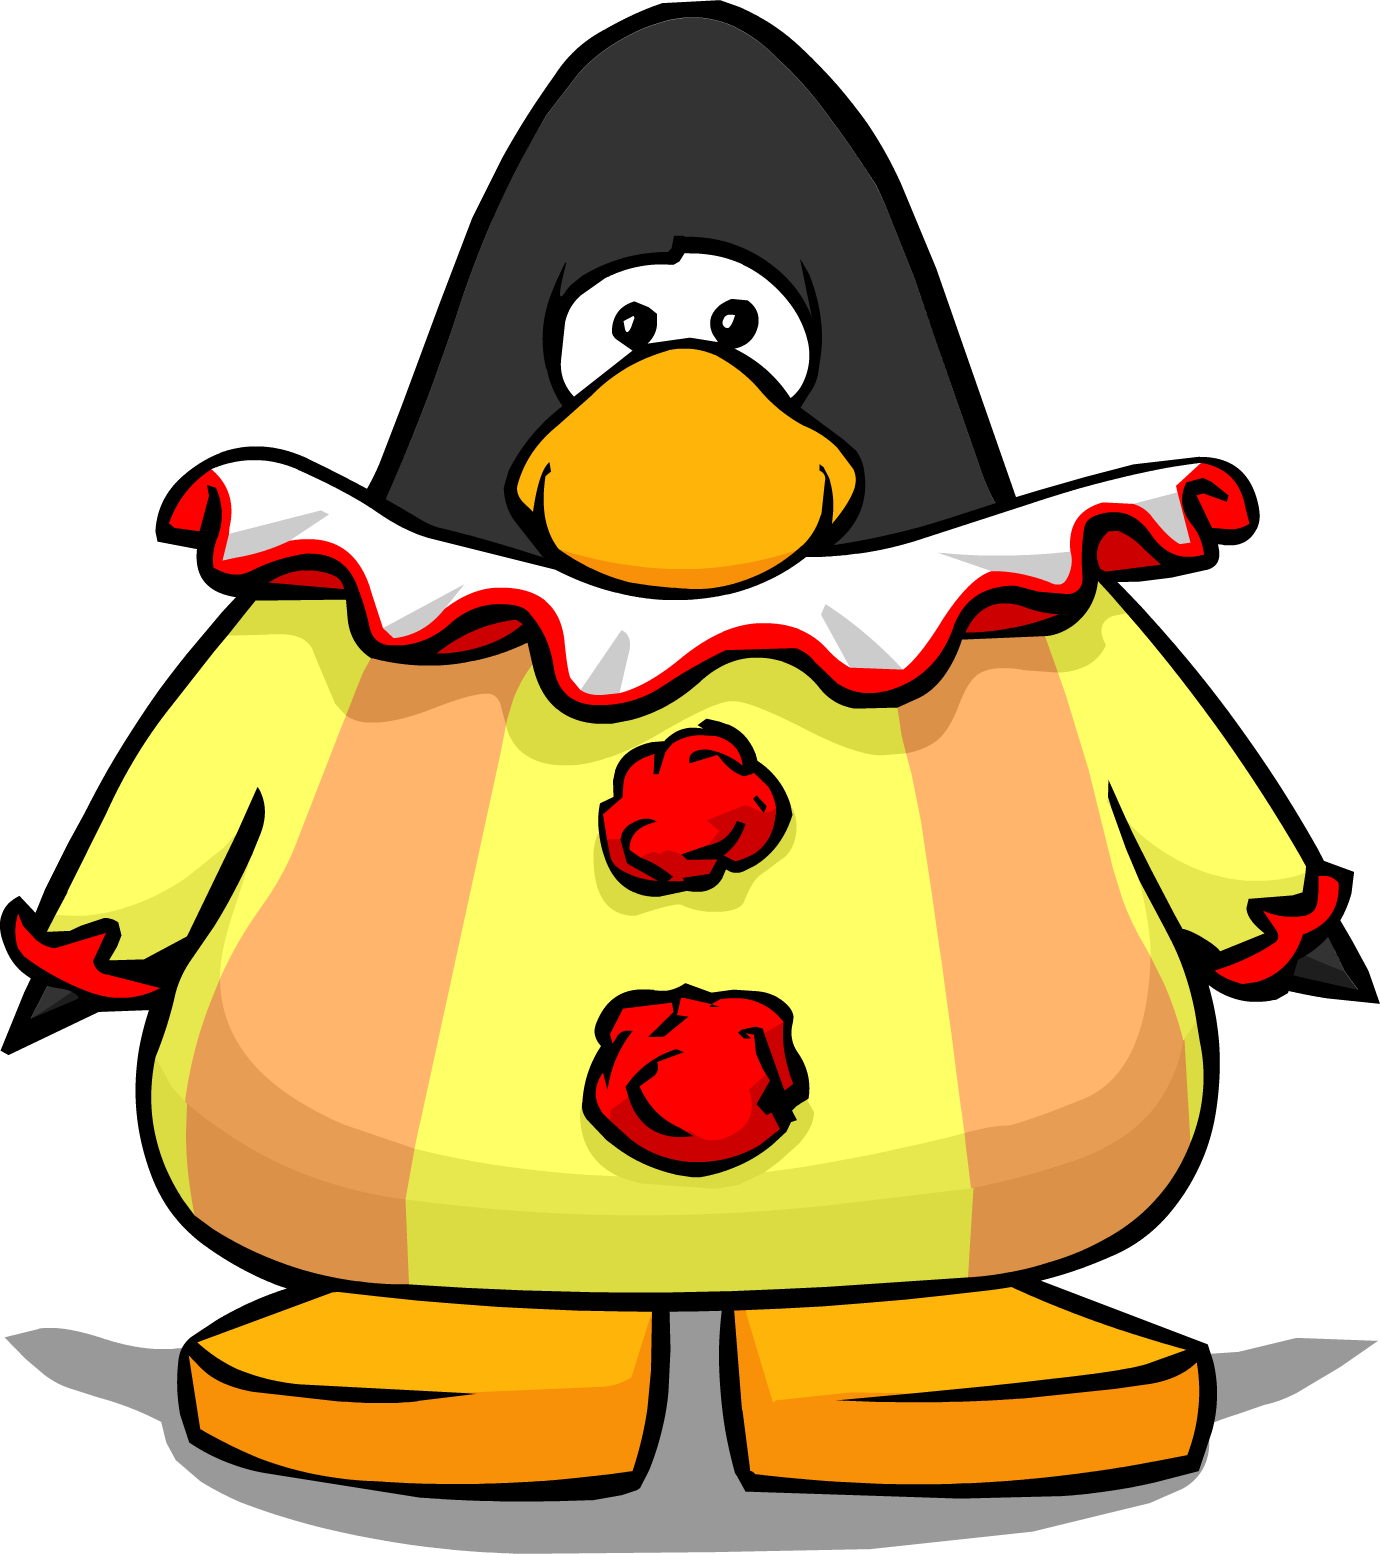 Clown clipart clothes. Image costume on a